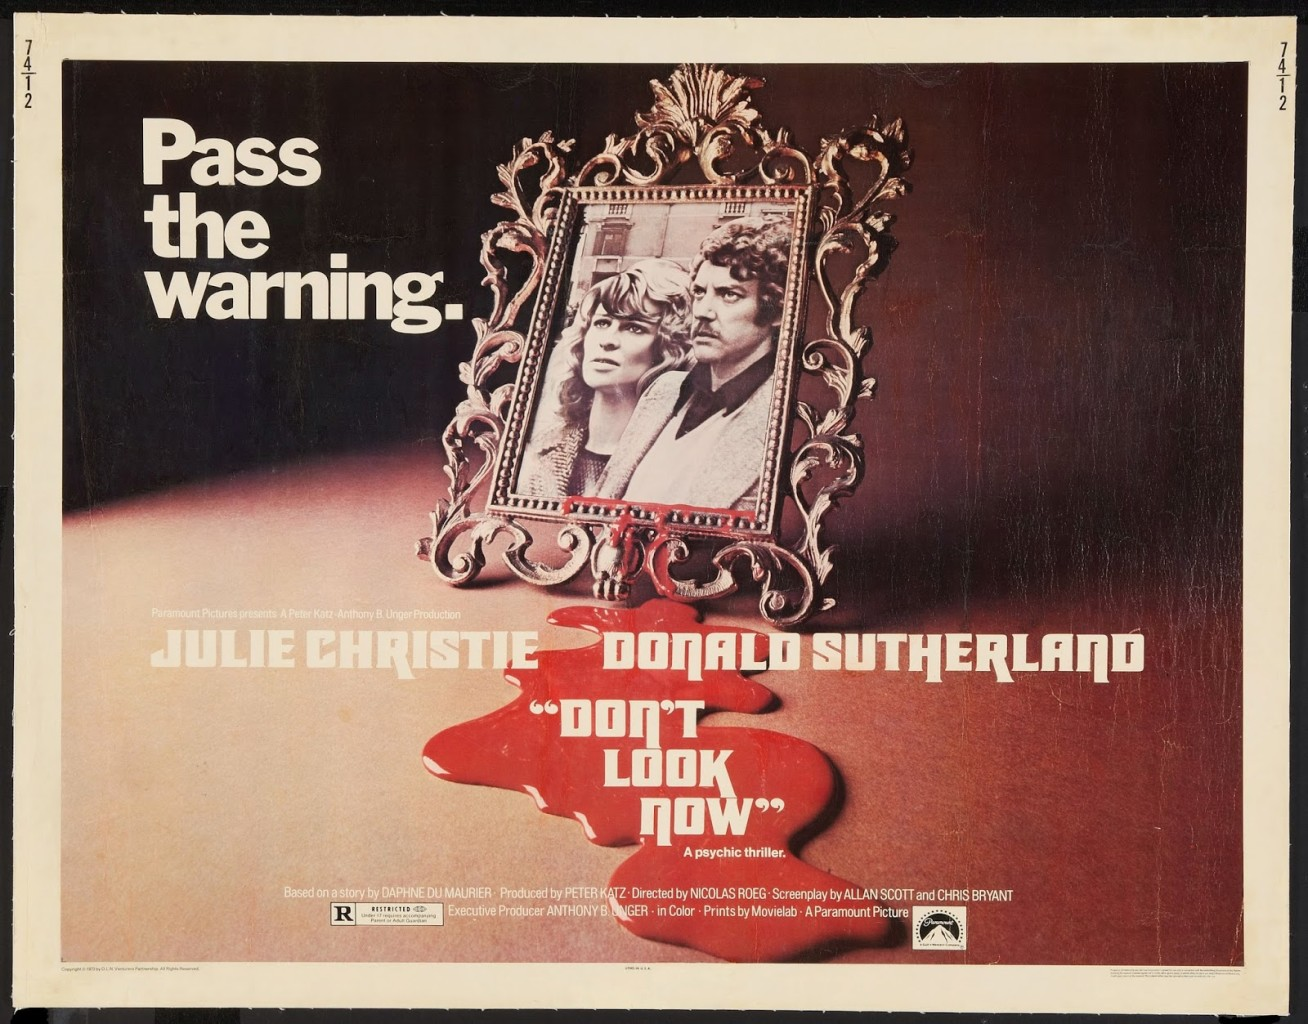 DON'T LOOK NOW - American Poster 2